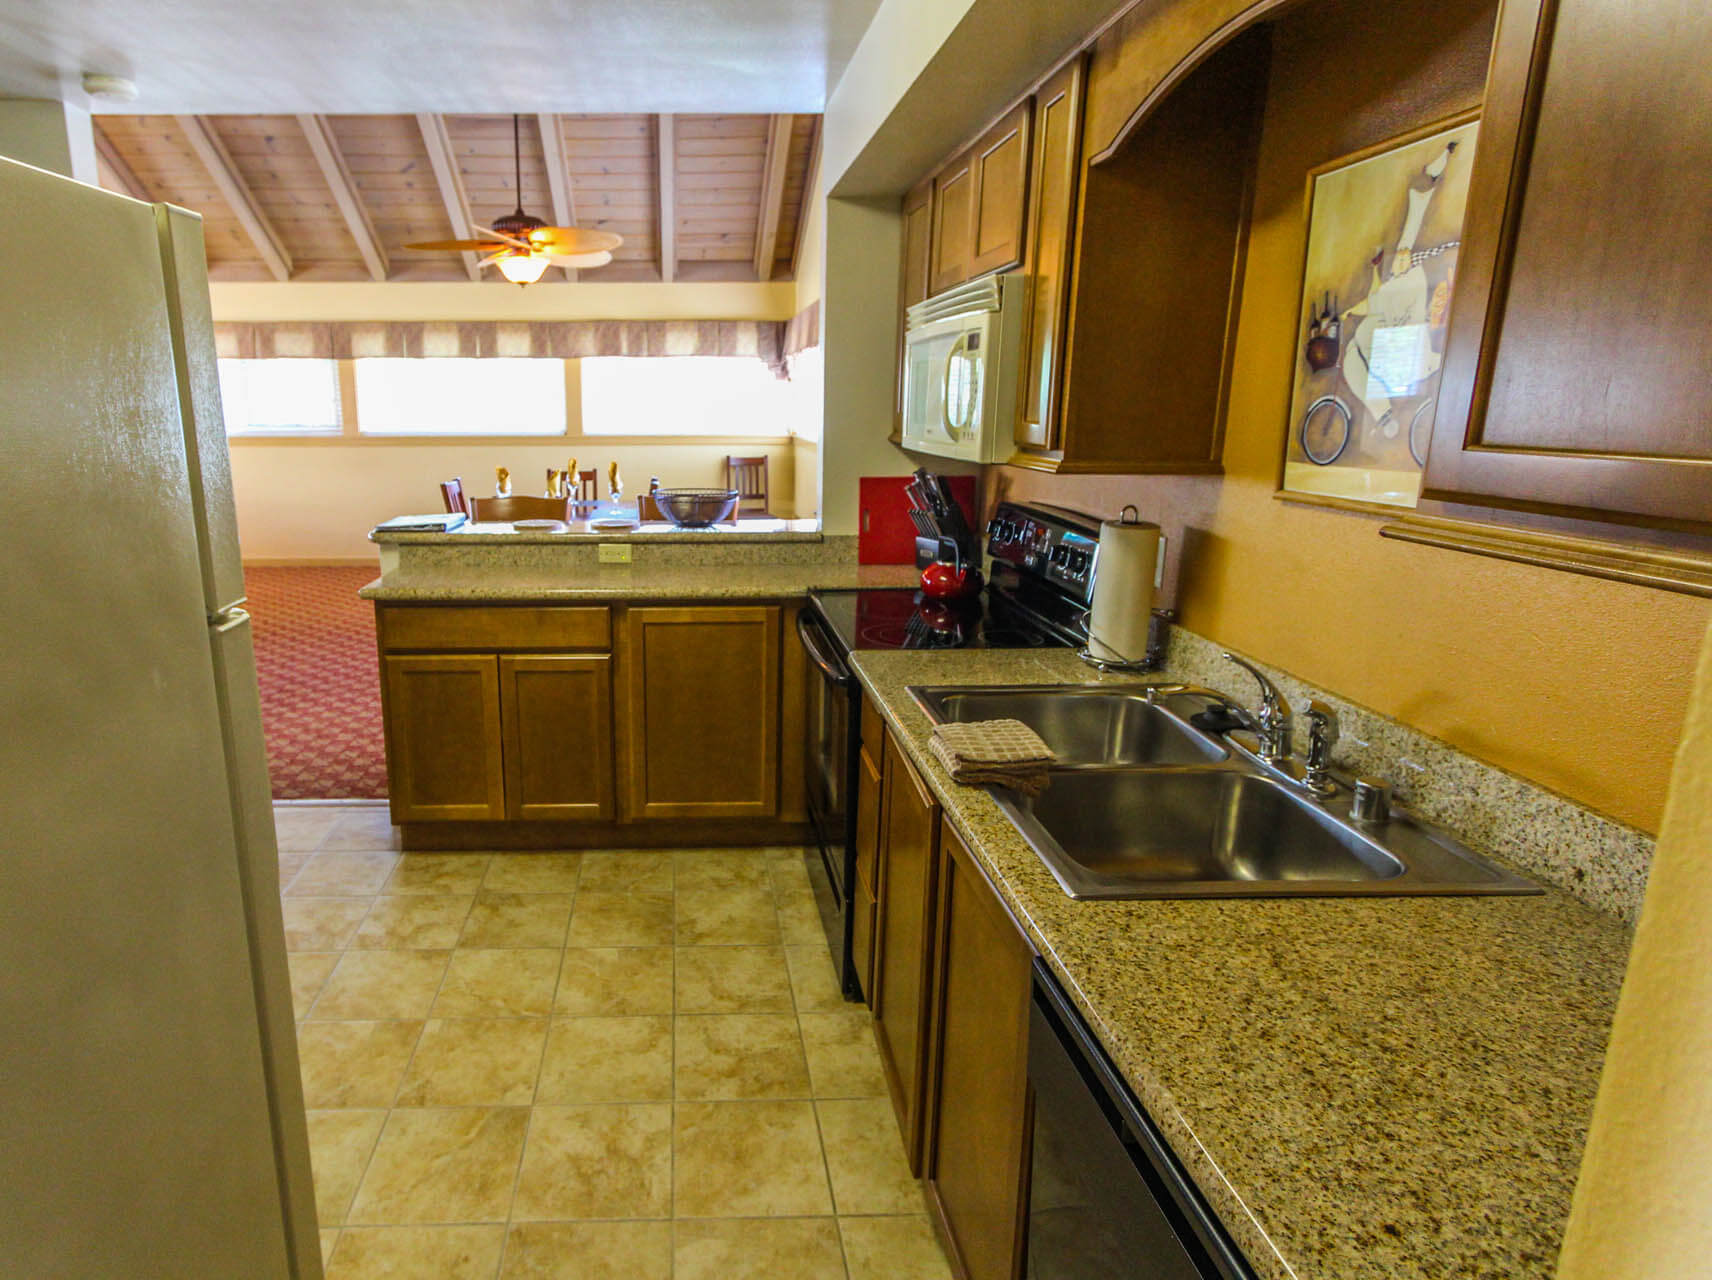 Pacific Grove Plaza Kitchen